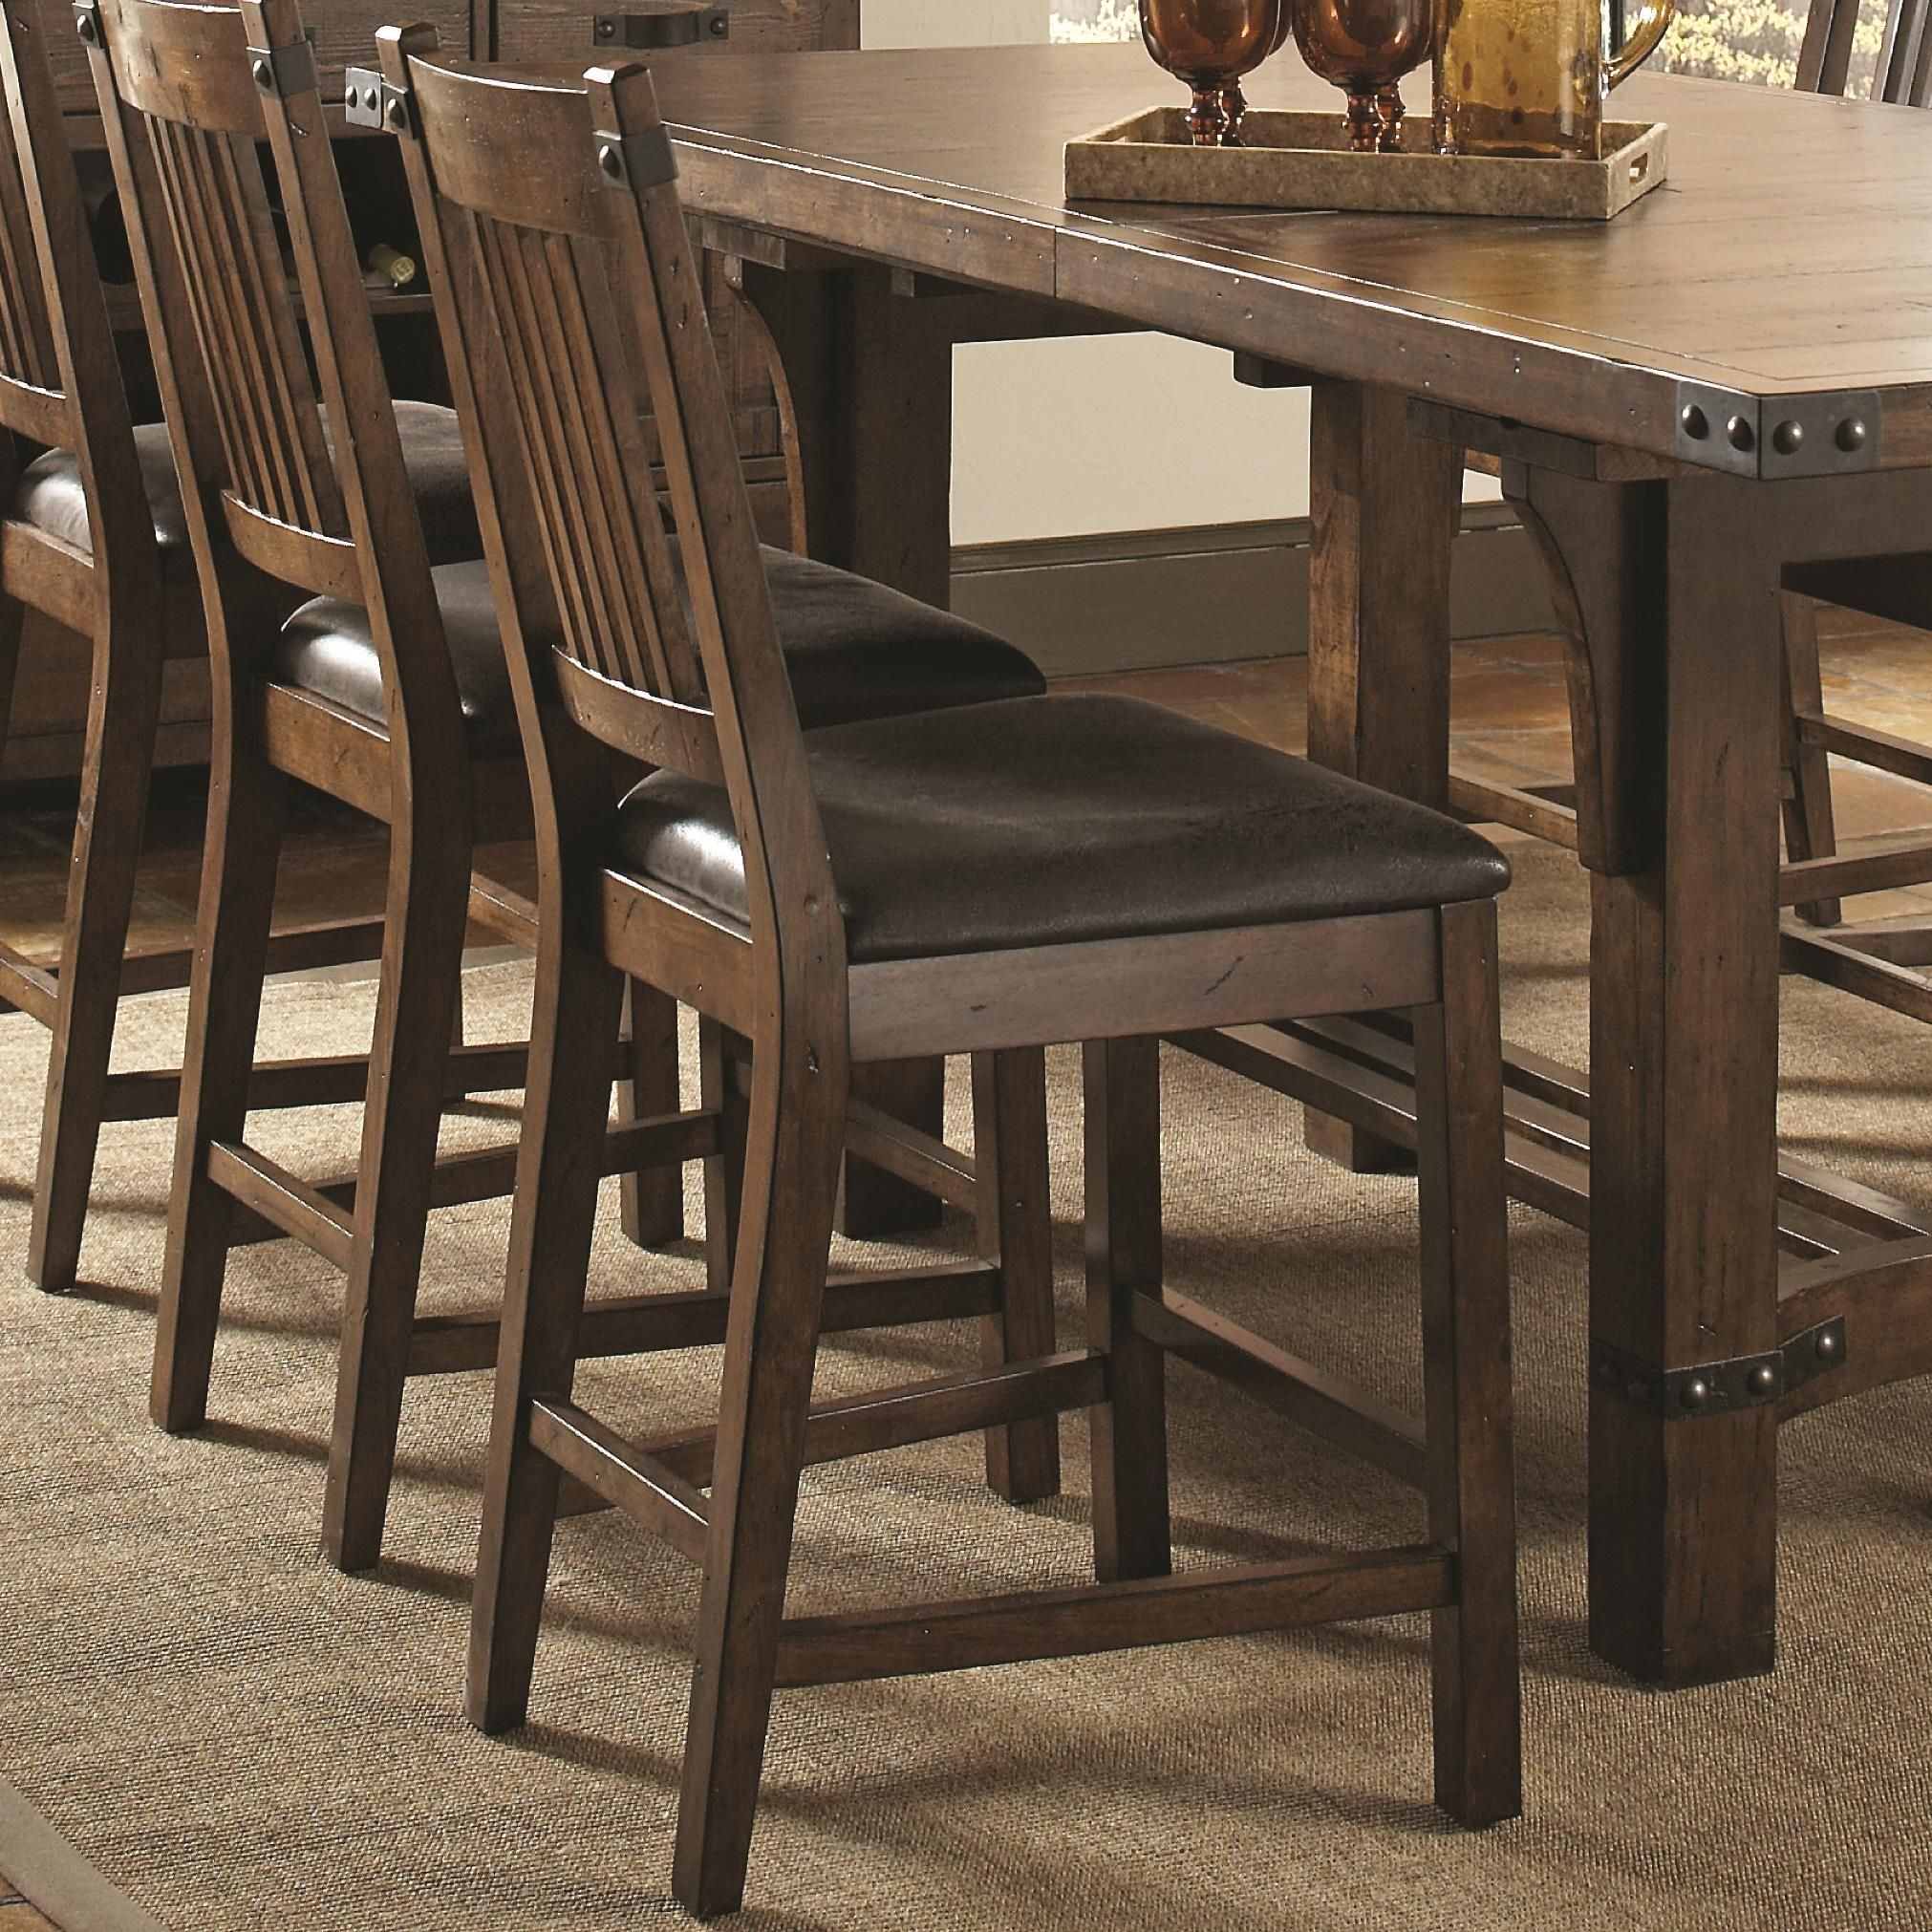 counter height chairs set of 2 walnut dining chair padima rustic leather from